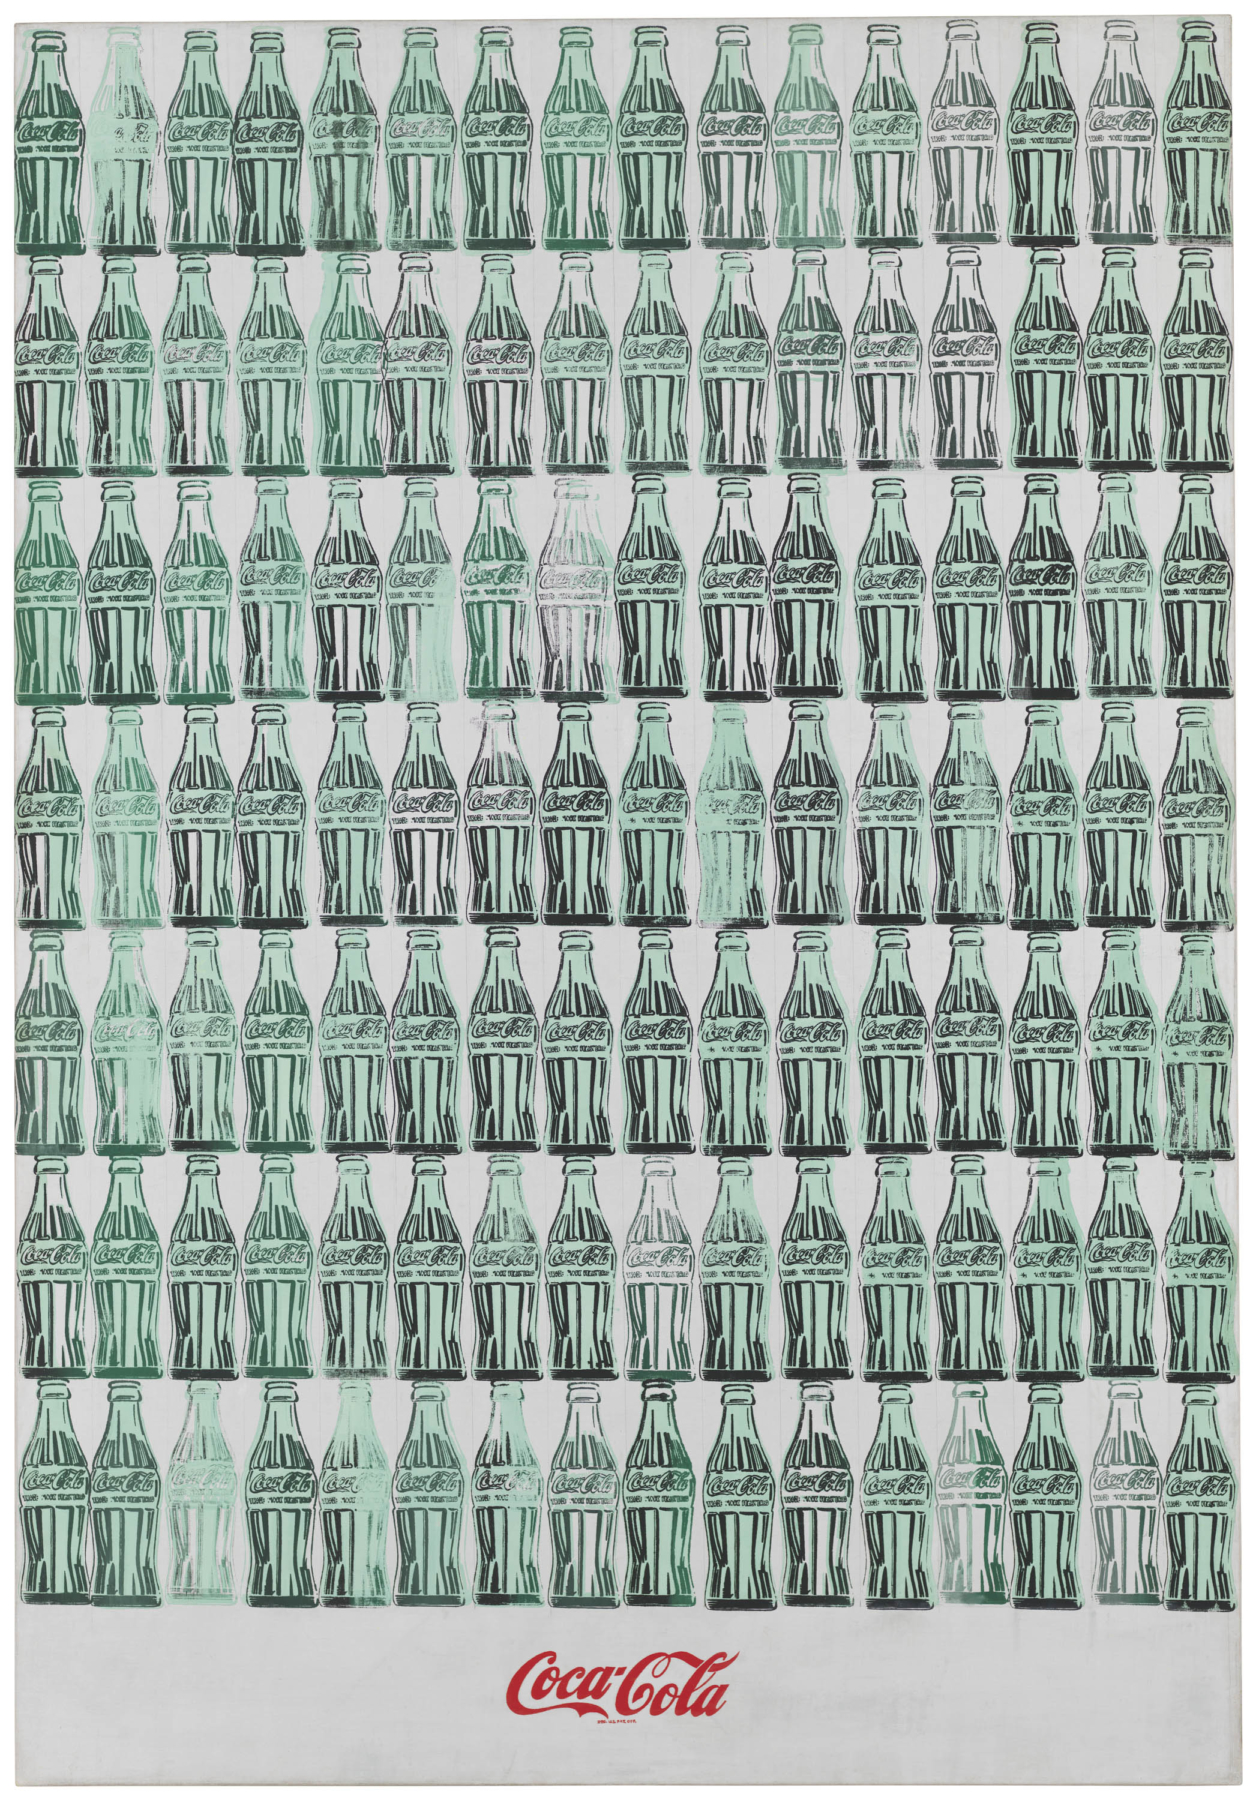 Andy Warhol. Green Coca-Cola Bottles, 1962. Whitney Museum of American Art, New York; purchase with funds from the Friends of the Whitney Museum of American Art. © 2019 The Andy Warhol Foundation for the Visual Arts, Inc. / Artists Rights Society (ARS), New York.